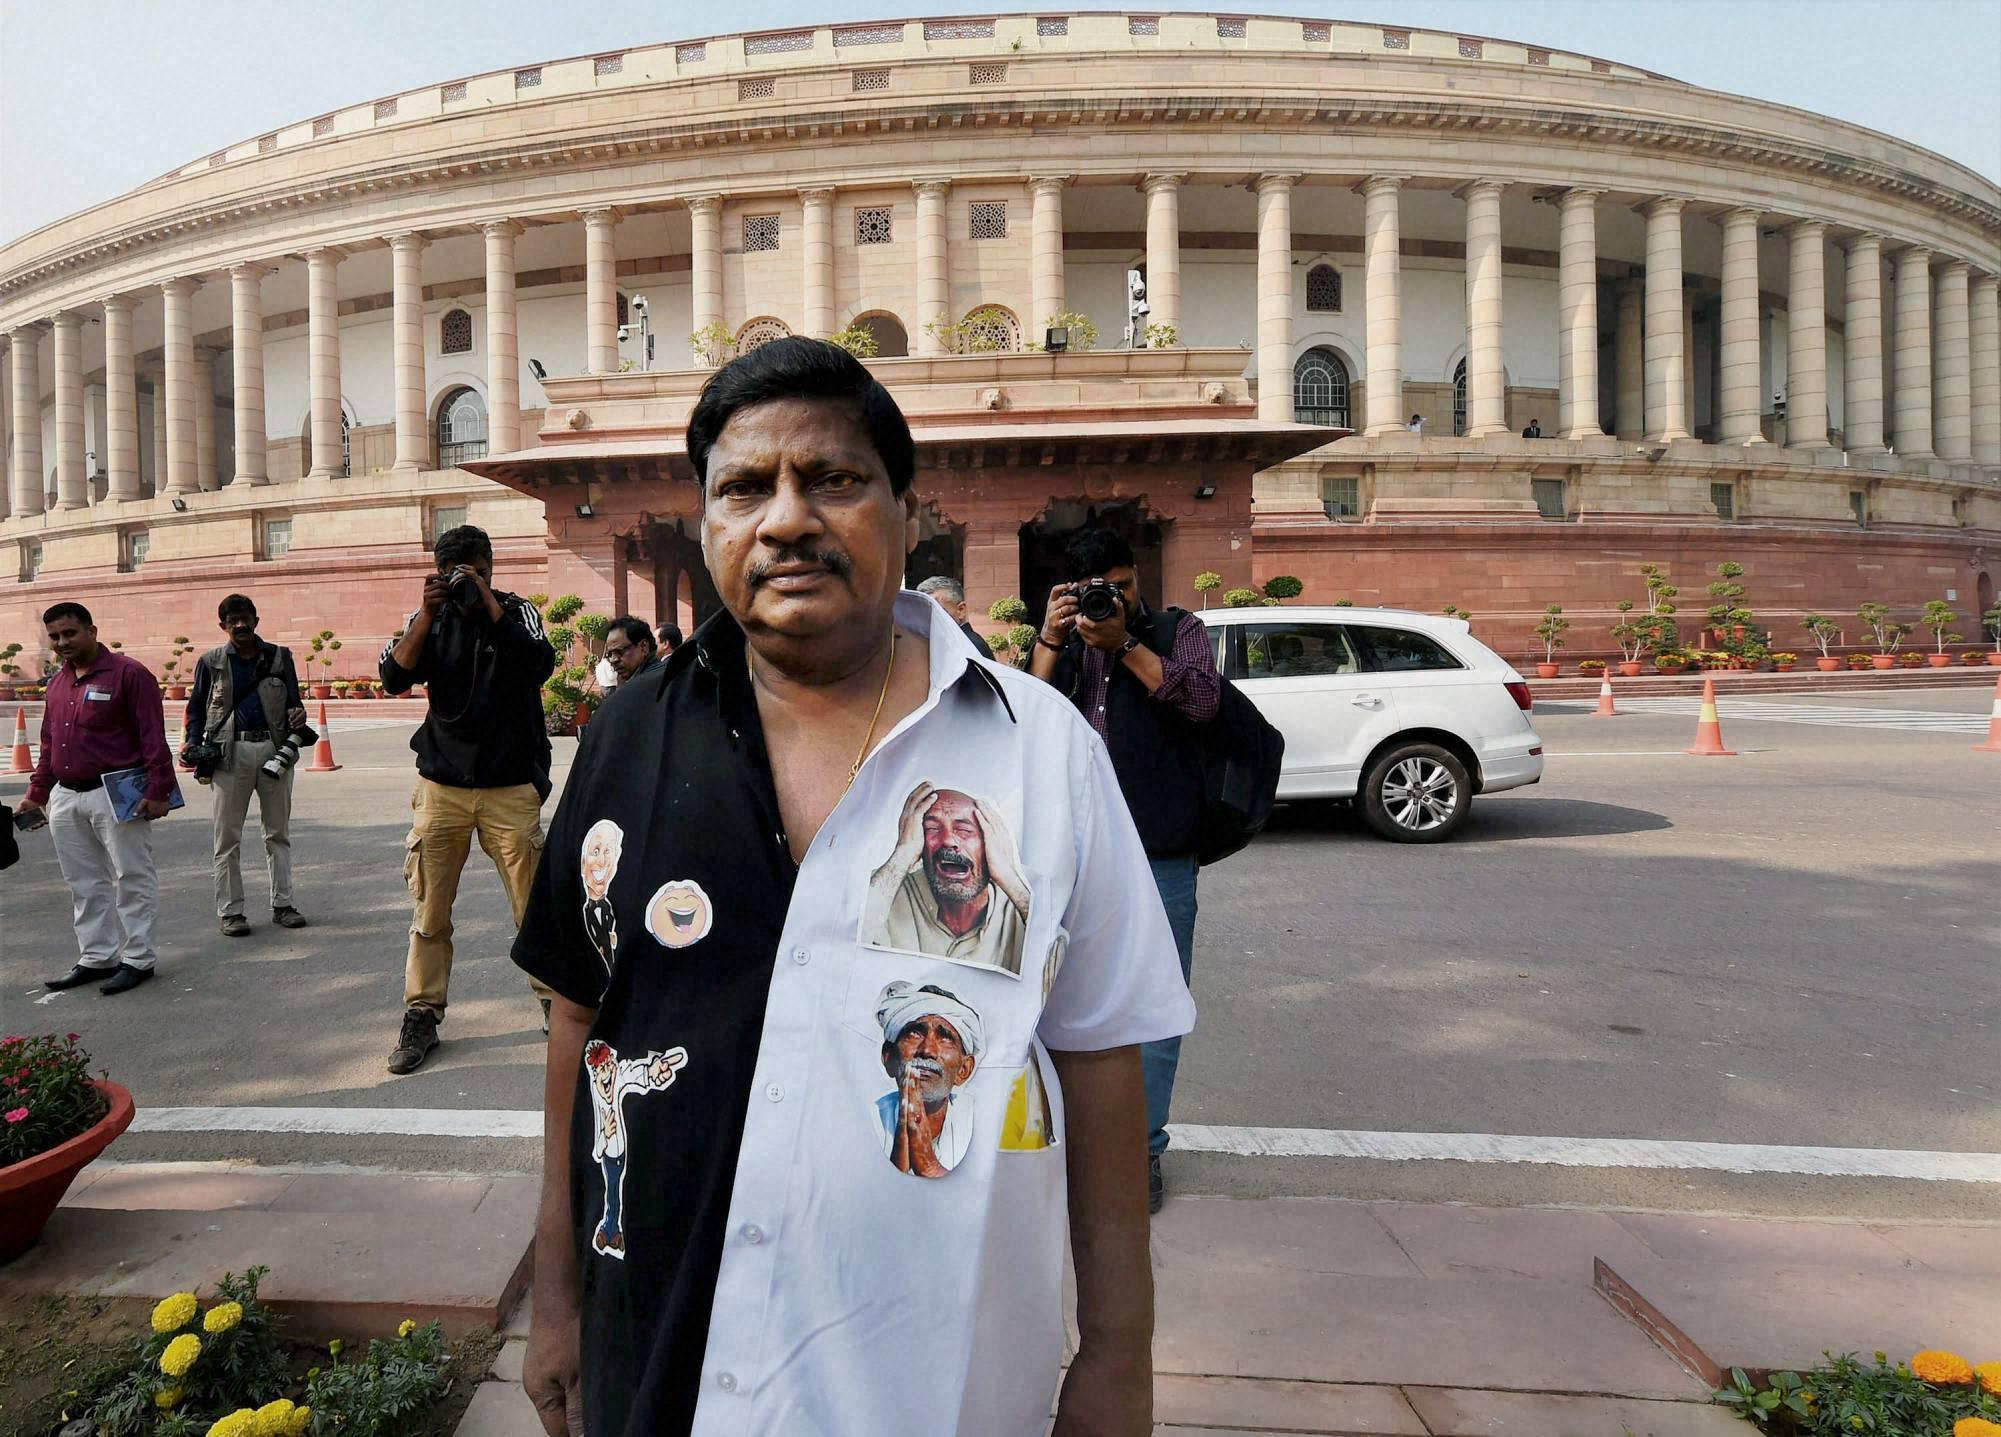 New Delhi: Telugu Desam Party MP N. Sivaprasad clad in a black-and-white attire to protest against demonetisation at the Parliament, in New Delhi on Tuesday. PTI Photo by Shahbaz Khan(PTI11_29_2016_000103B)